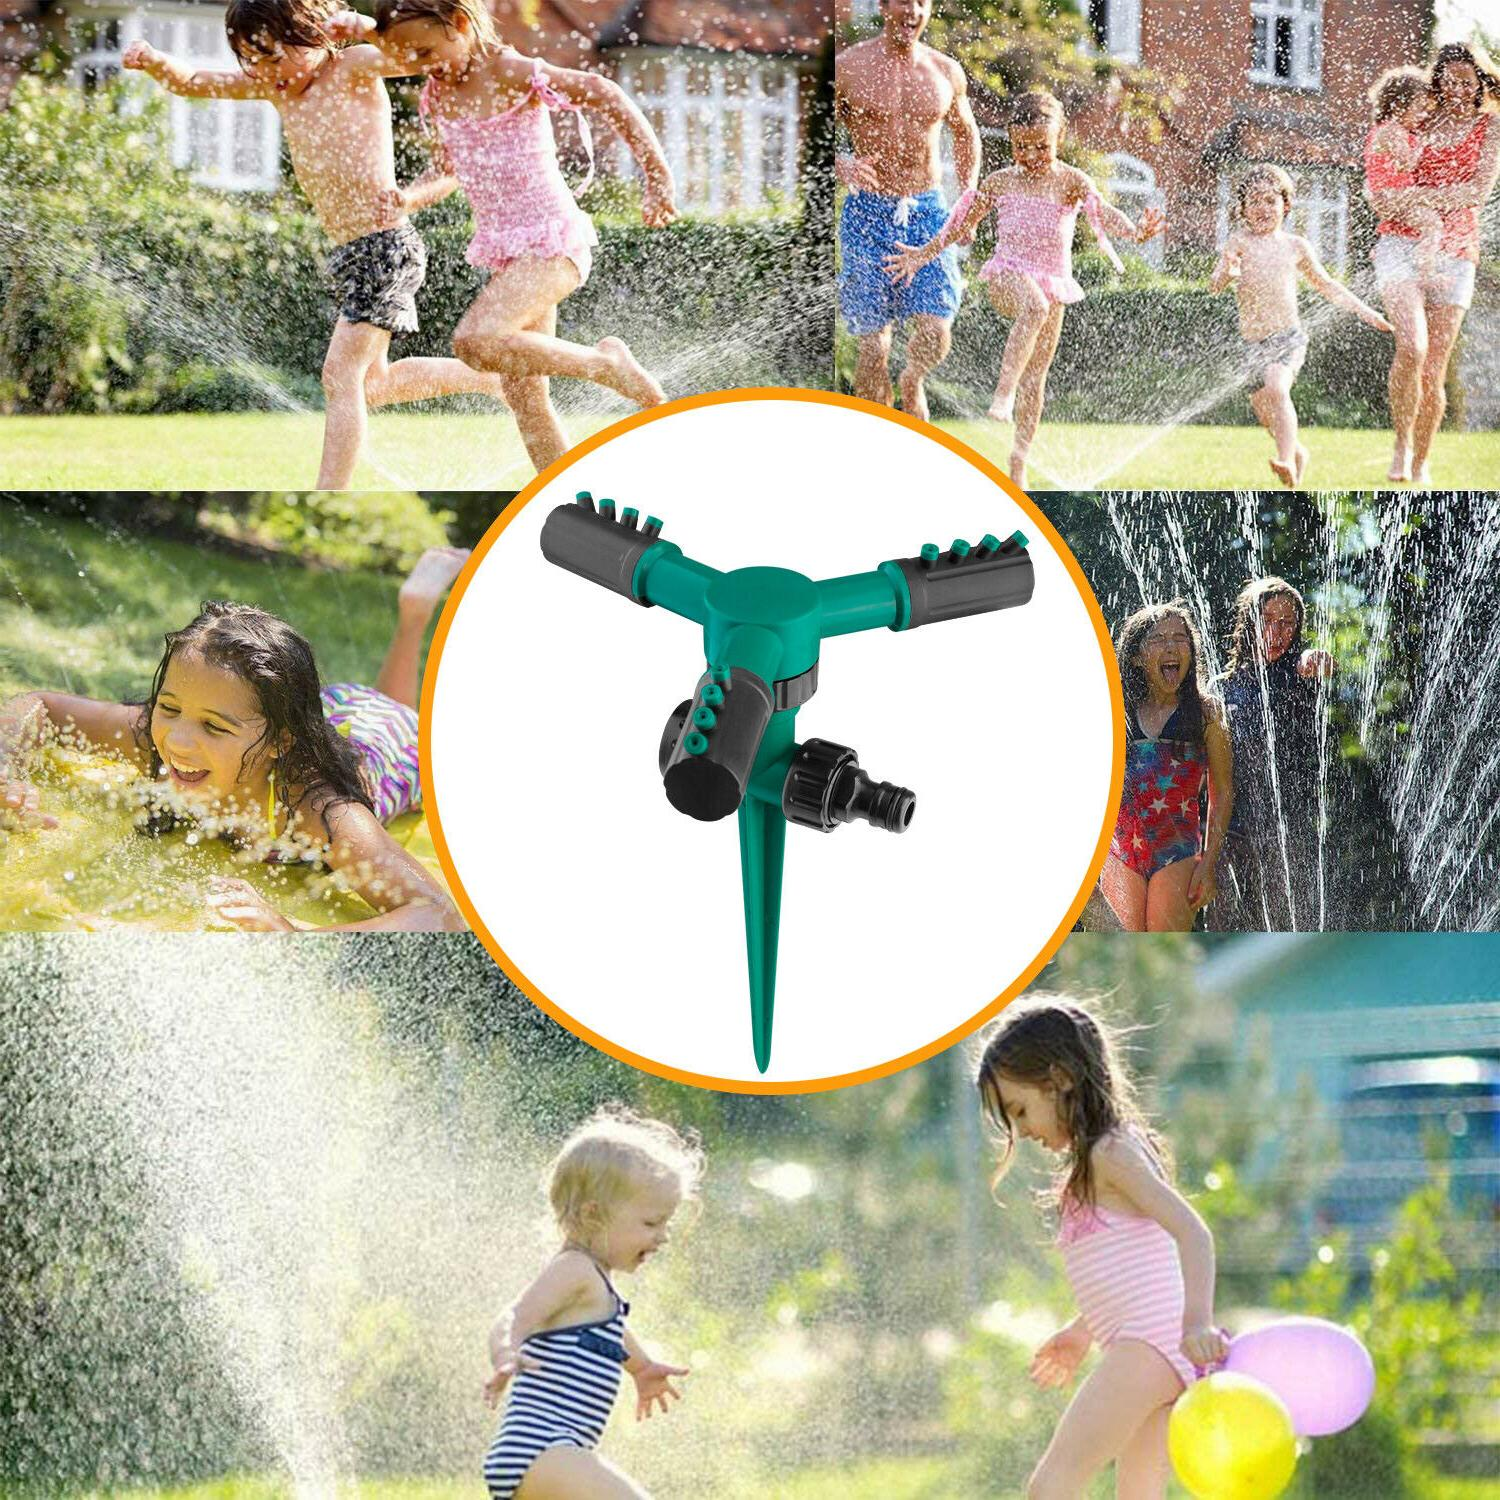 2× Rotating Lawn Water Sprinkler Garden Irrigation System